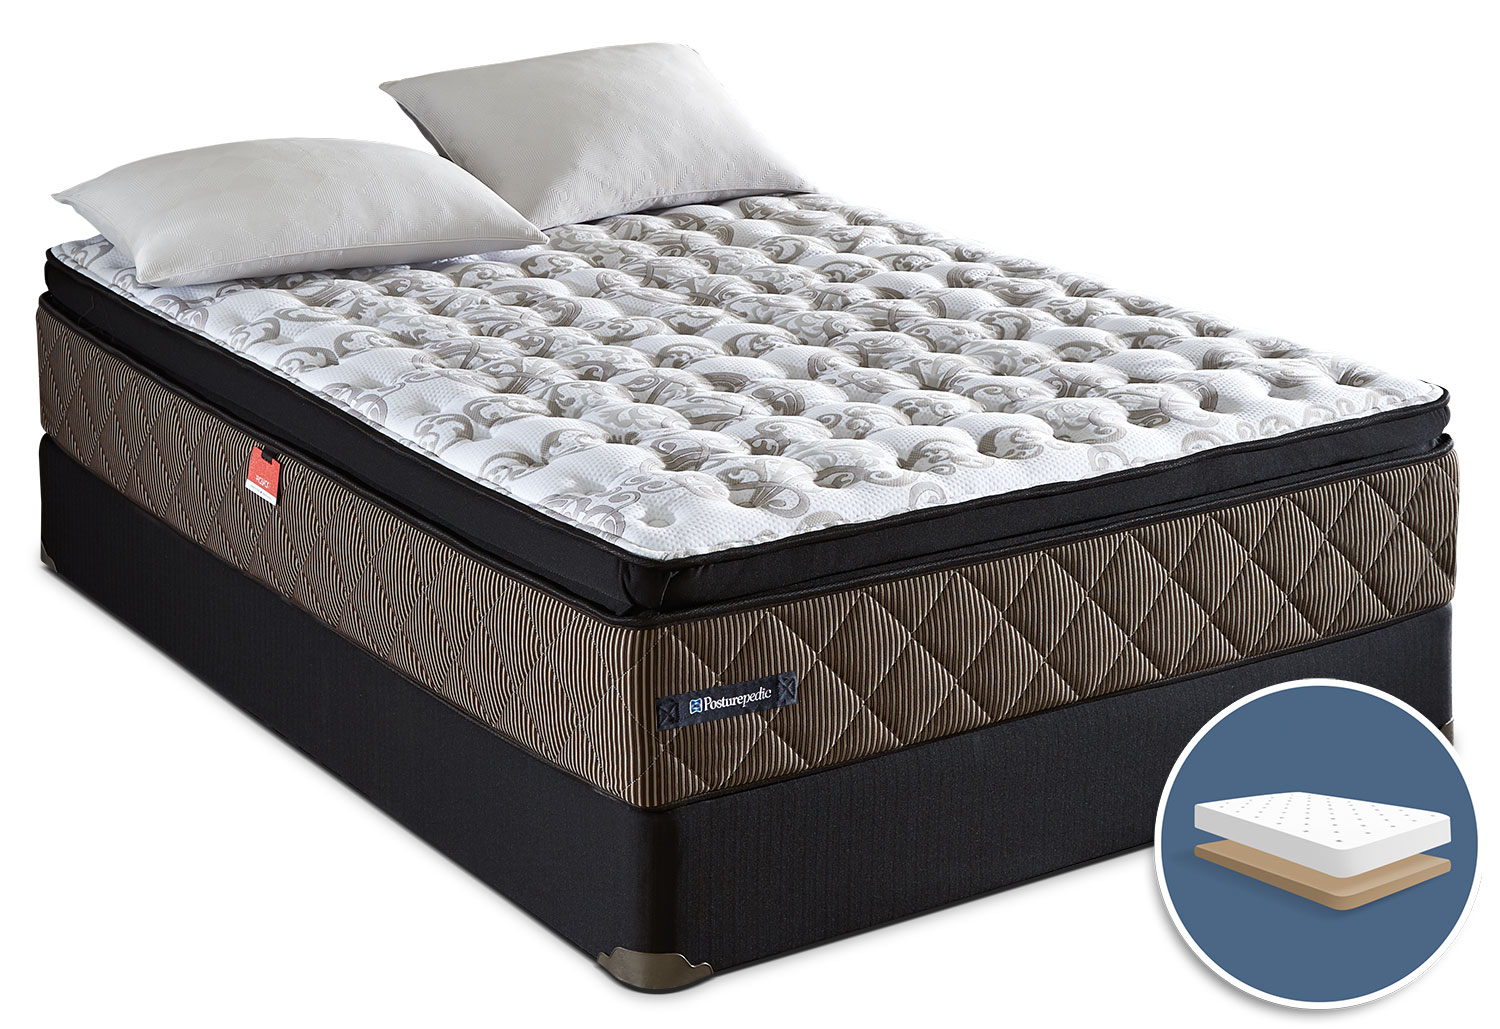 Mattresses and Bedding - Sealy Posturepedic Crown Jewel Roseberry Euro Pillow-Top Low-Profile Full Mattress Set